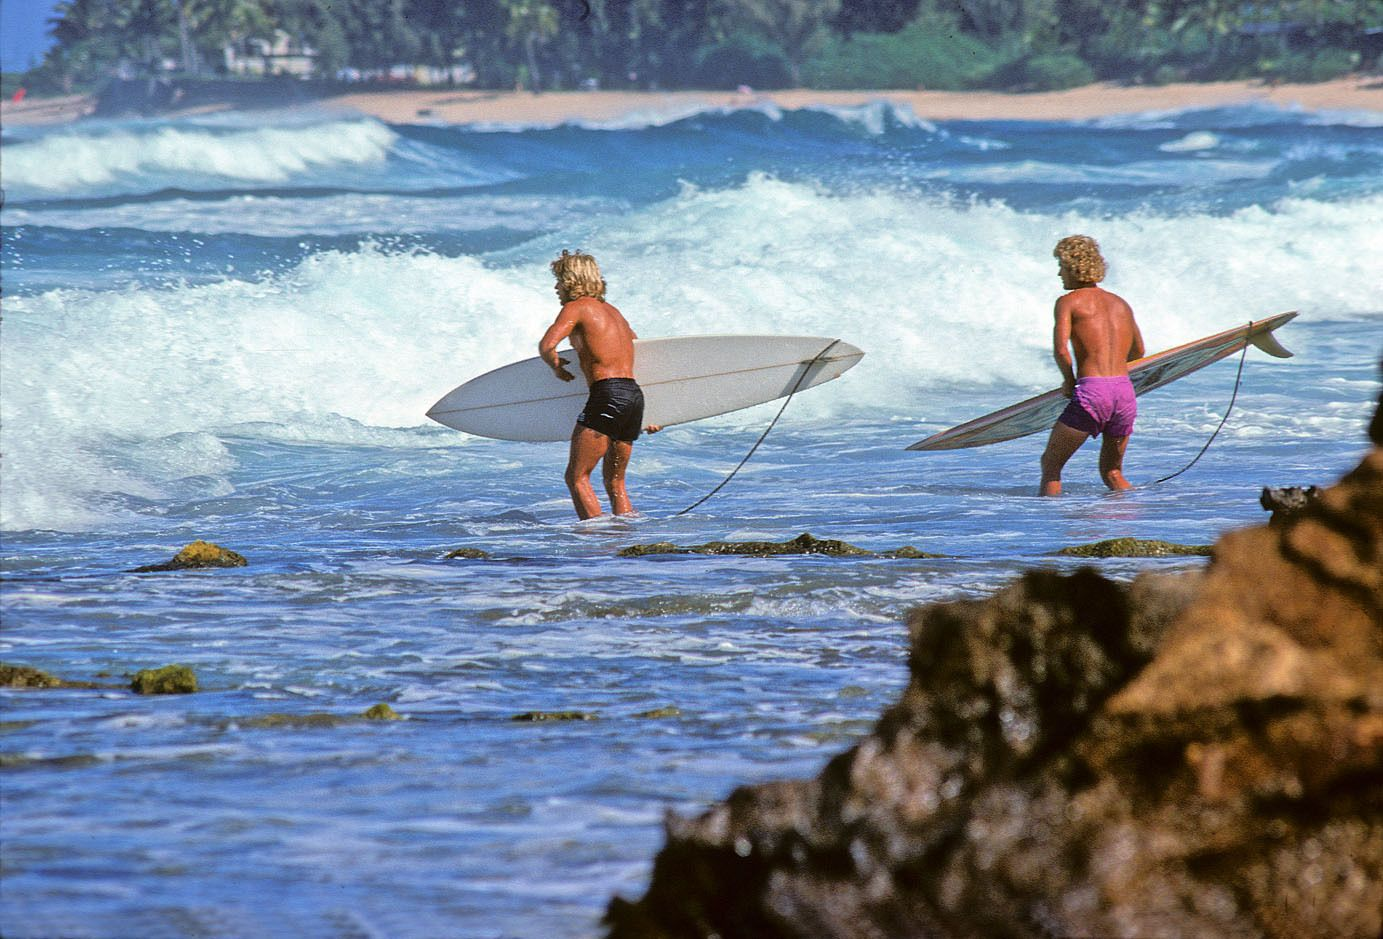 SAM HAWK, TERRY FITZGERALD, ROCKY POINT , OAHU, HI. 1976.